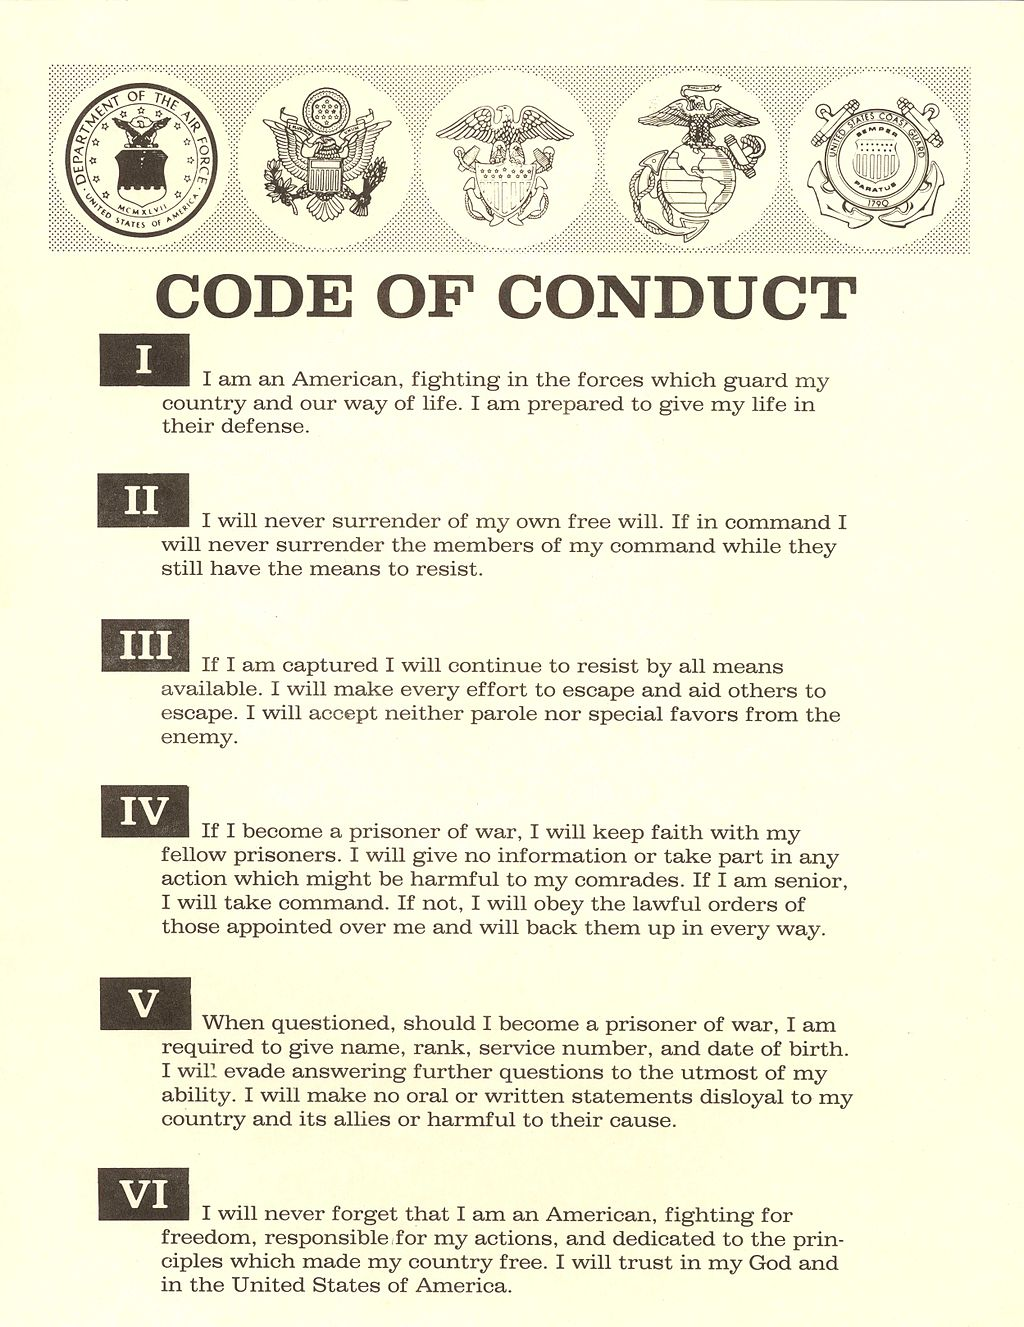 The United States Military Code Of Conduct